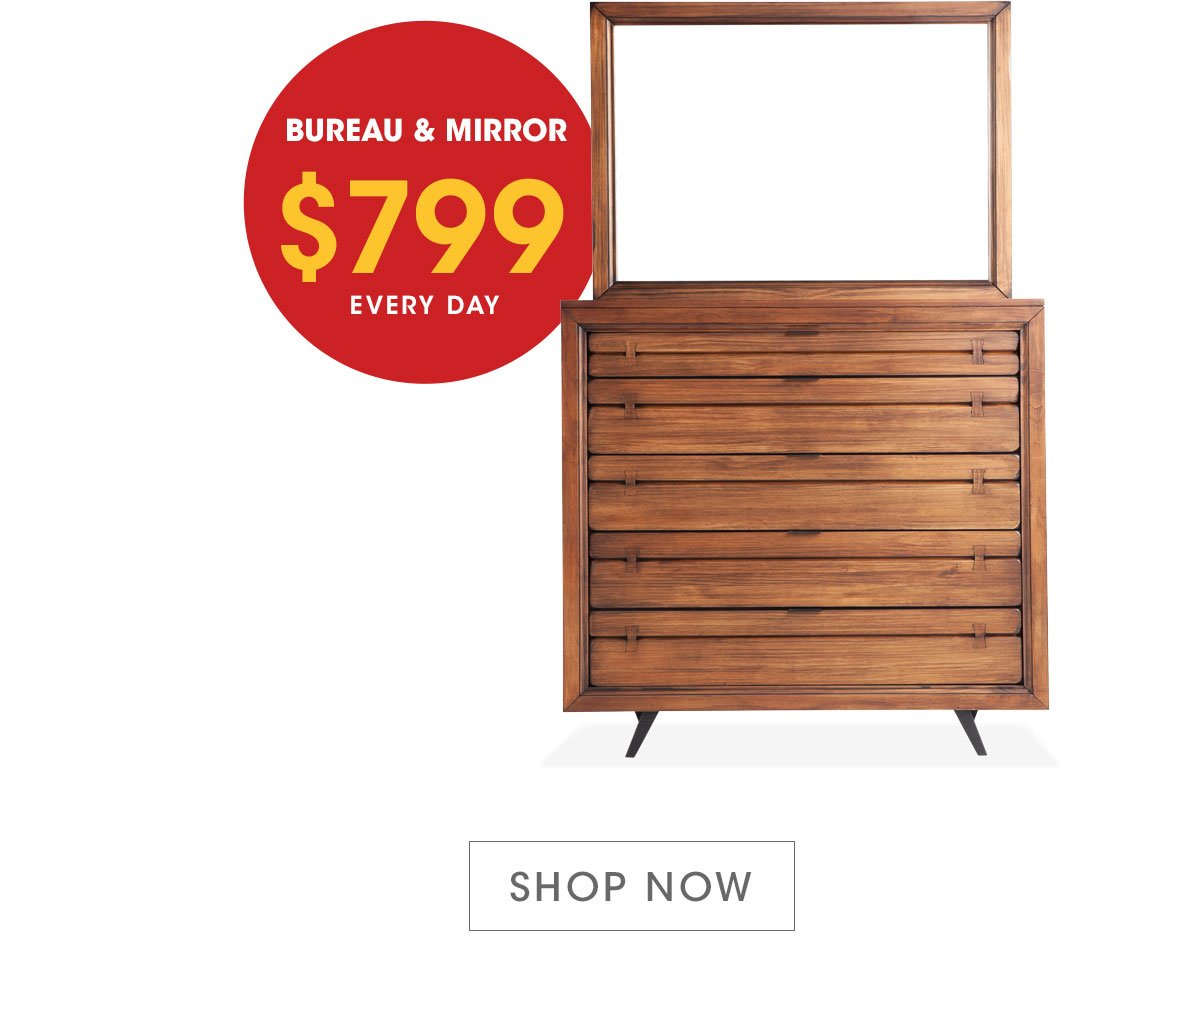 Bobs Discount Furniture Introducing The Bedroom Of Your Dreams Milled